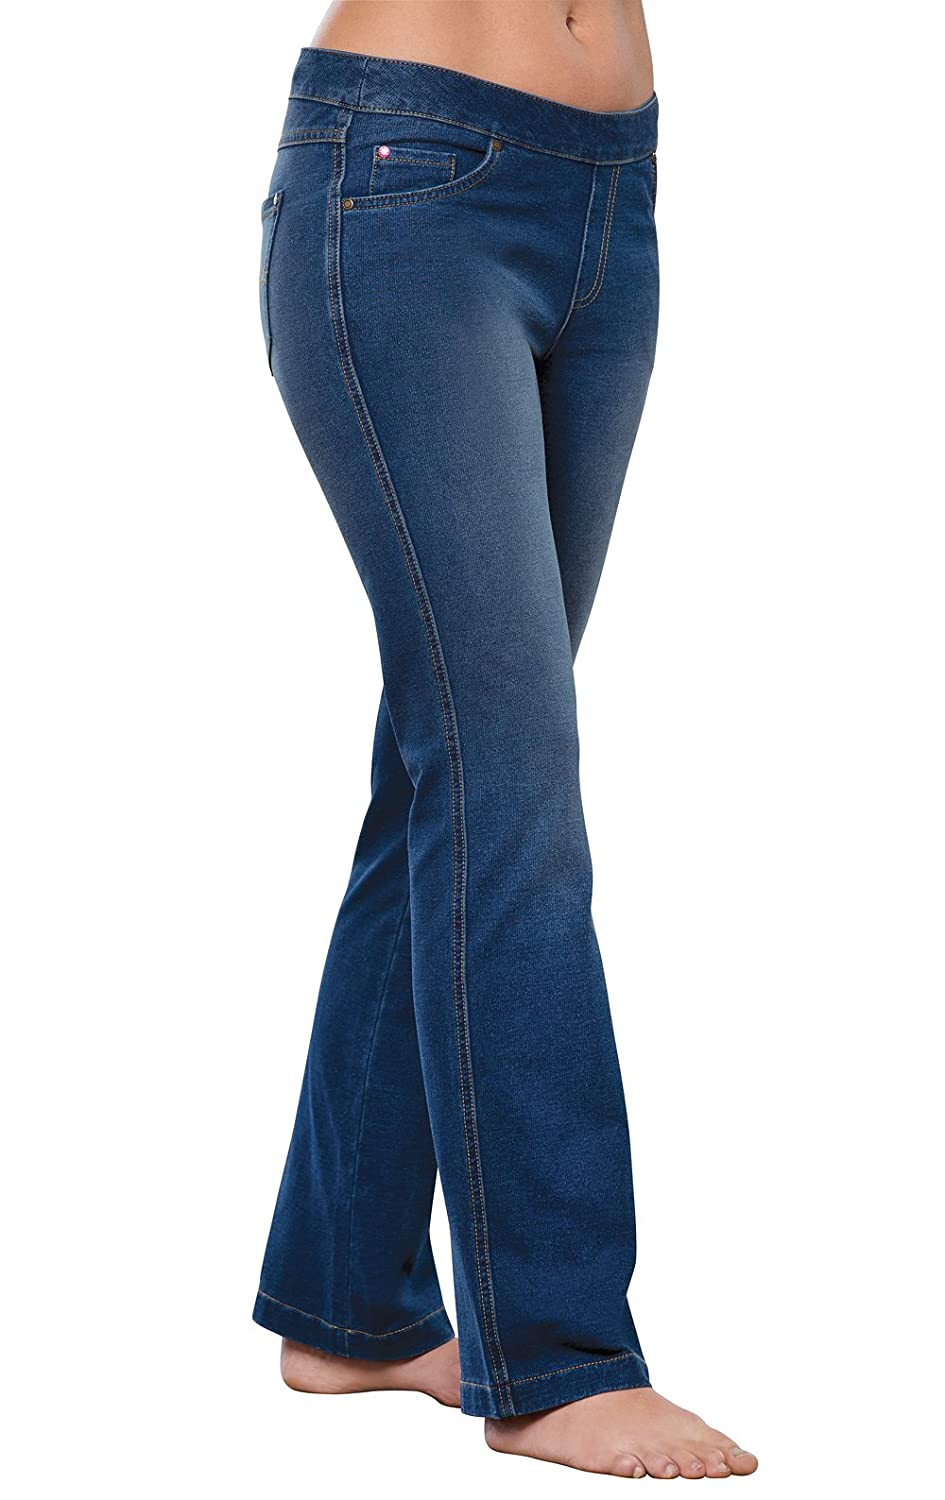 98e9b7f5da8ab Cute and Comfortable - Soft, stretchy, and stylish blue jeans that look  like denim but feel like pajamas so you can conquer the day comfortably and  in style ...